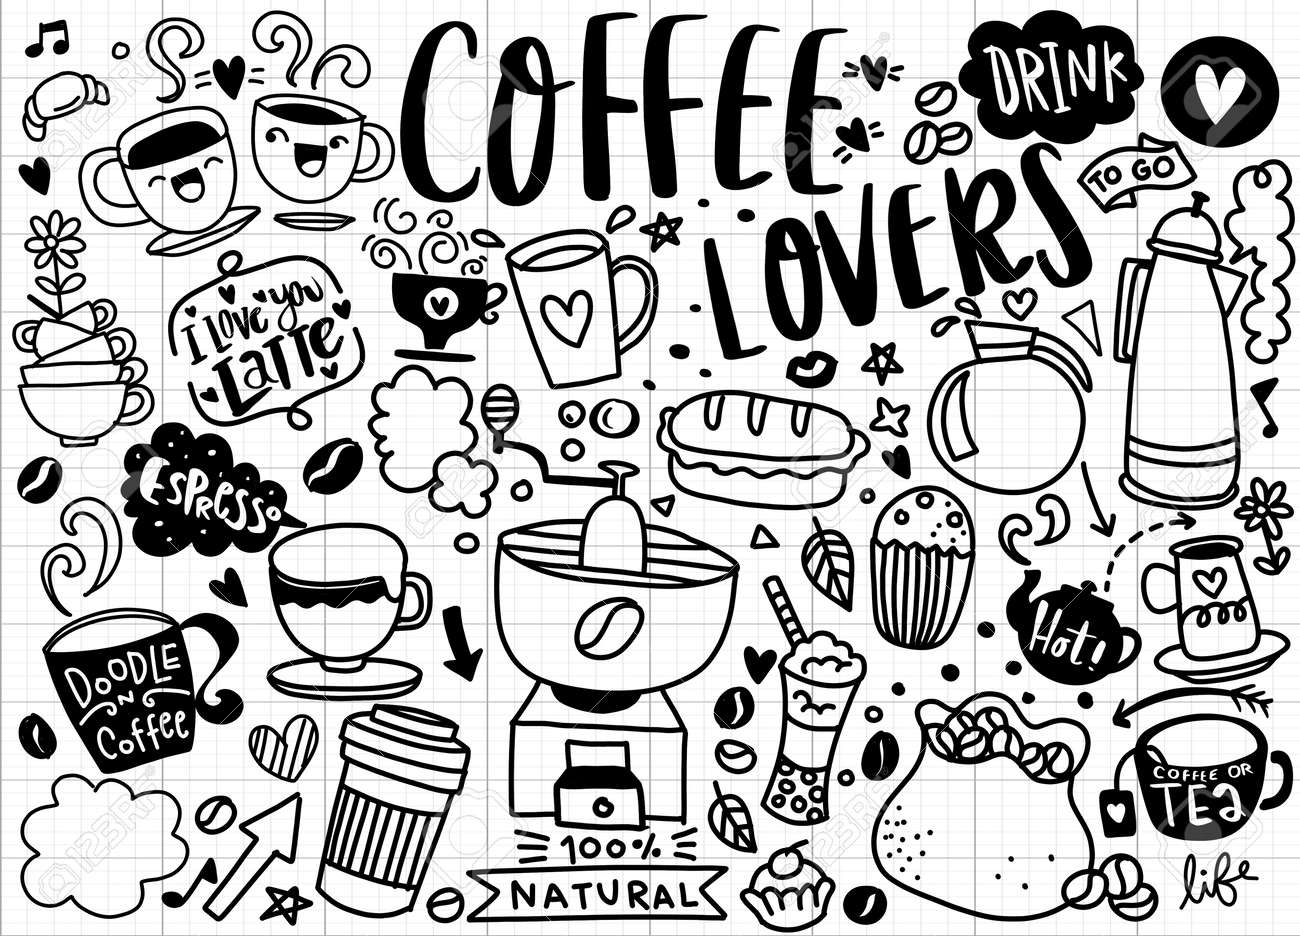 Set of hand drawn coffee and delicious sweets . Vector illustration. Cakes, biscuits, baking, cookie, pastries, donut, ice cream, macaroons. Perfect for dessert menu or food package desig - 135621560